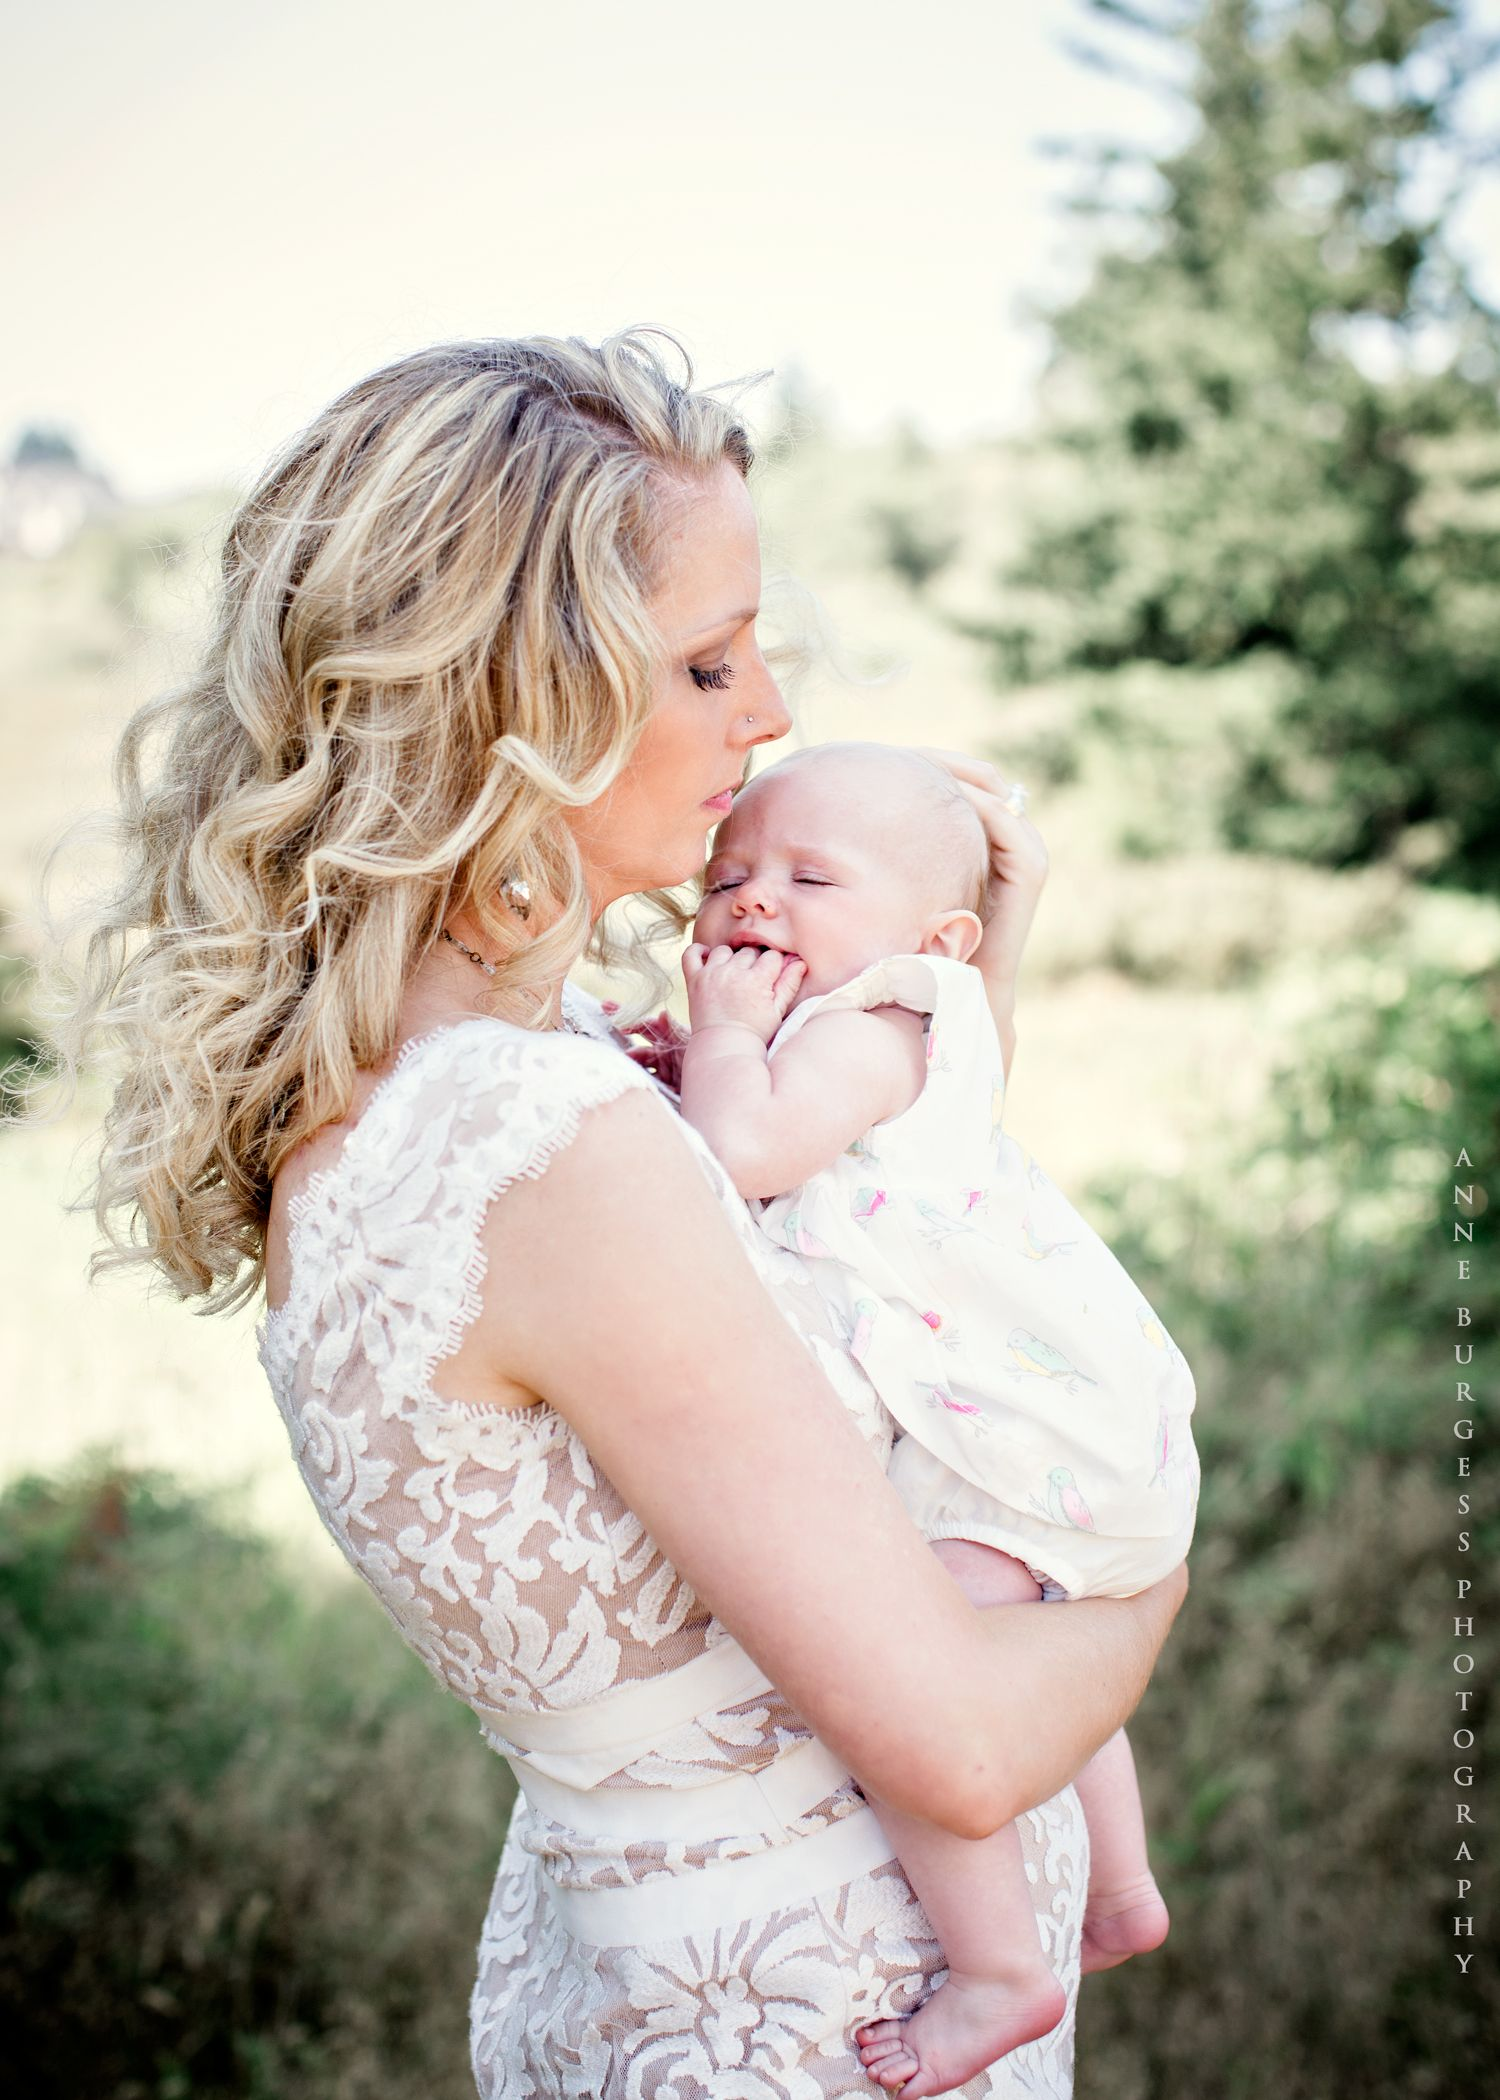 mother daughter photo, mom and baby photo ideas, mom and baby